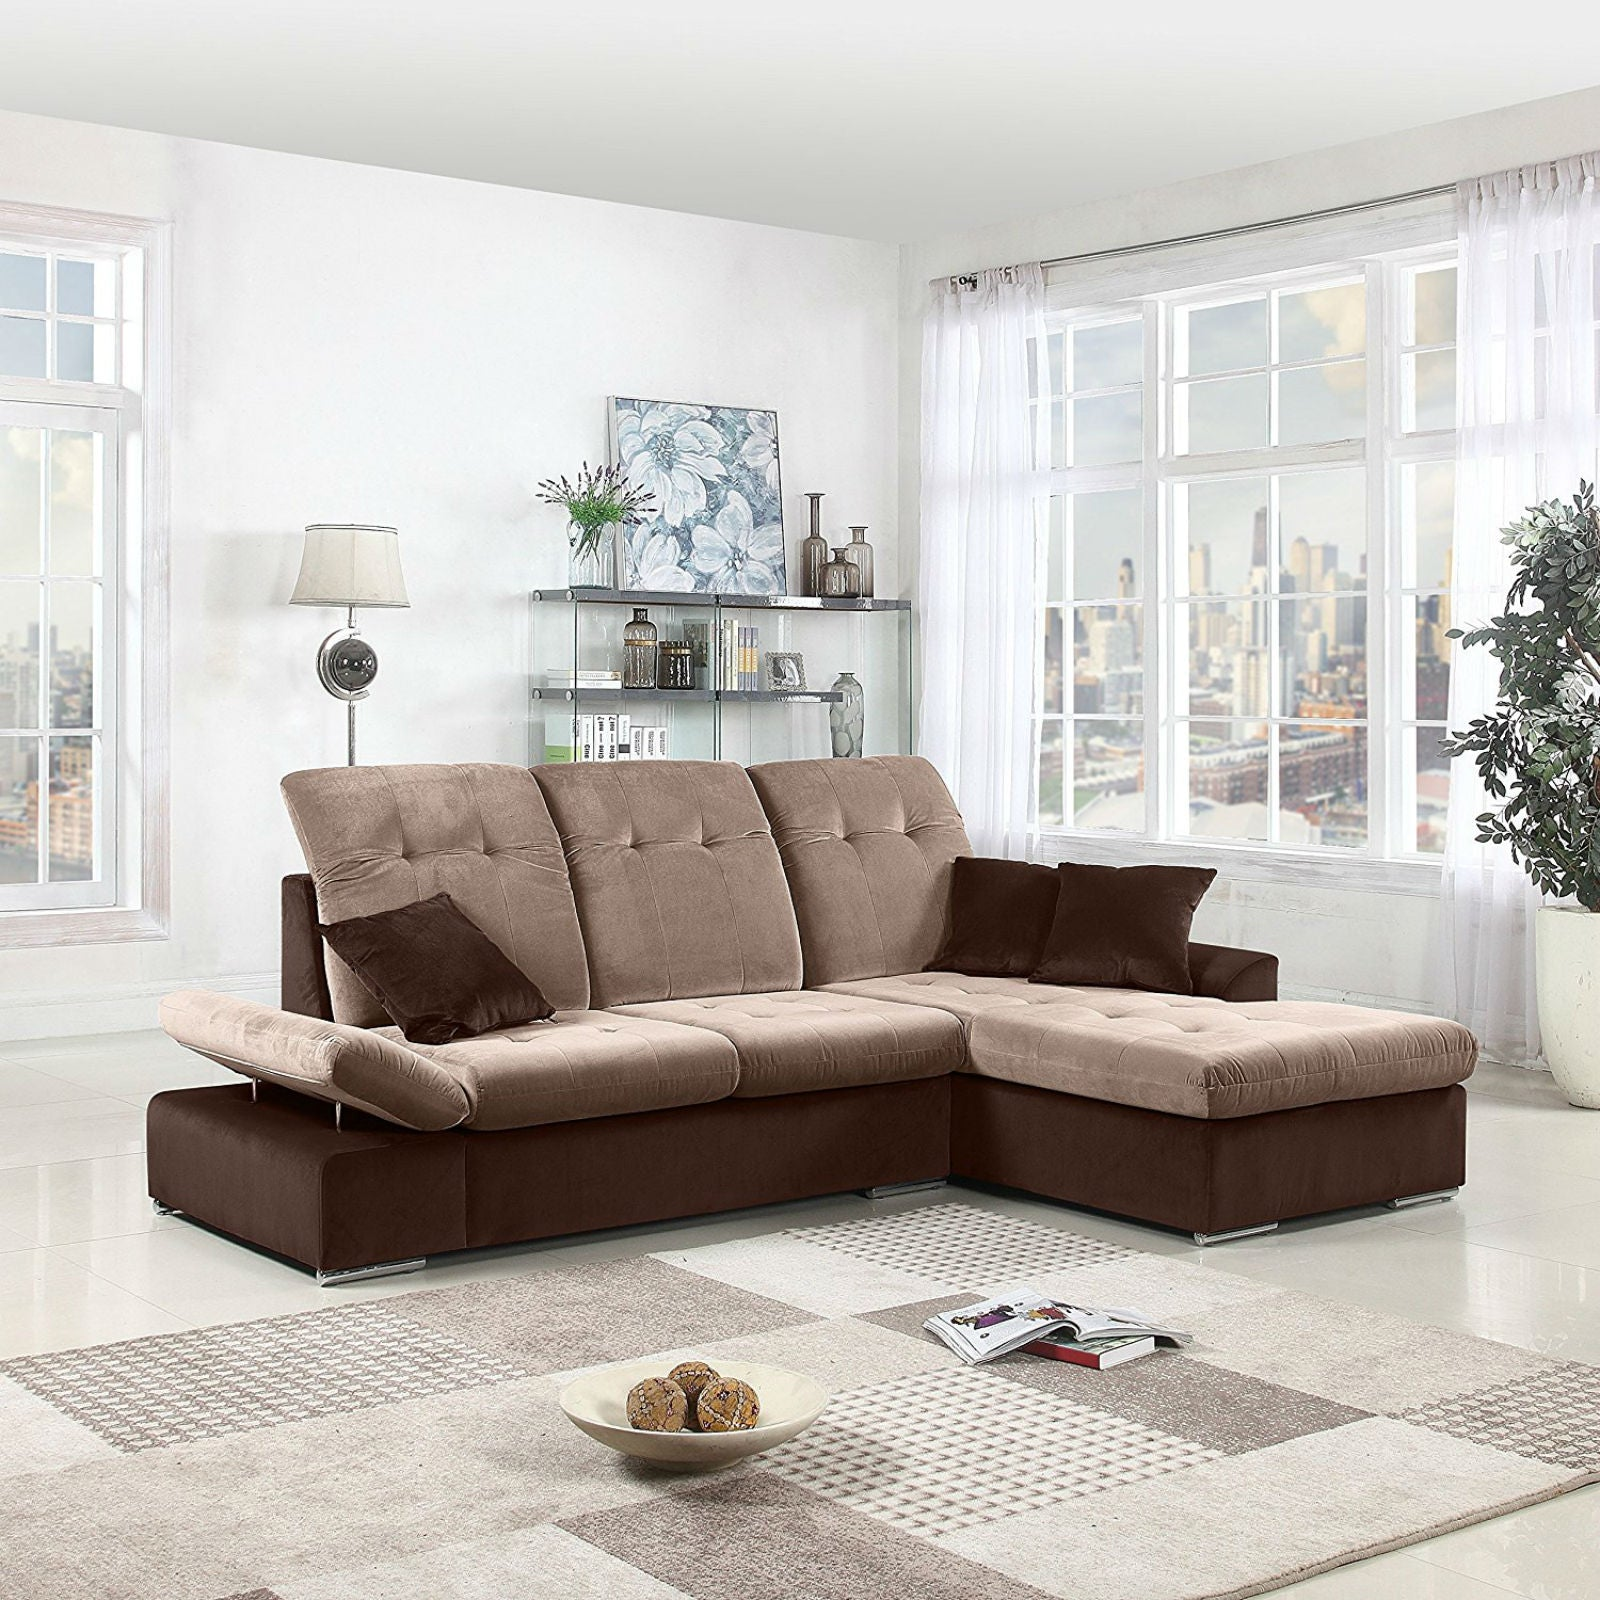 Concorde Modern Microfiber Sectional Sofa with Right Chaise